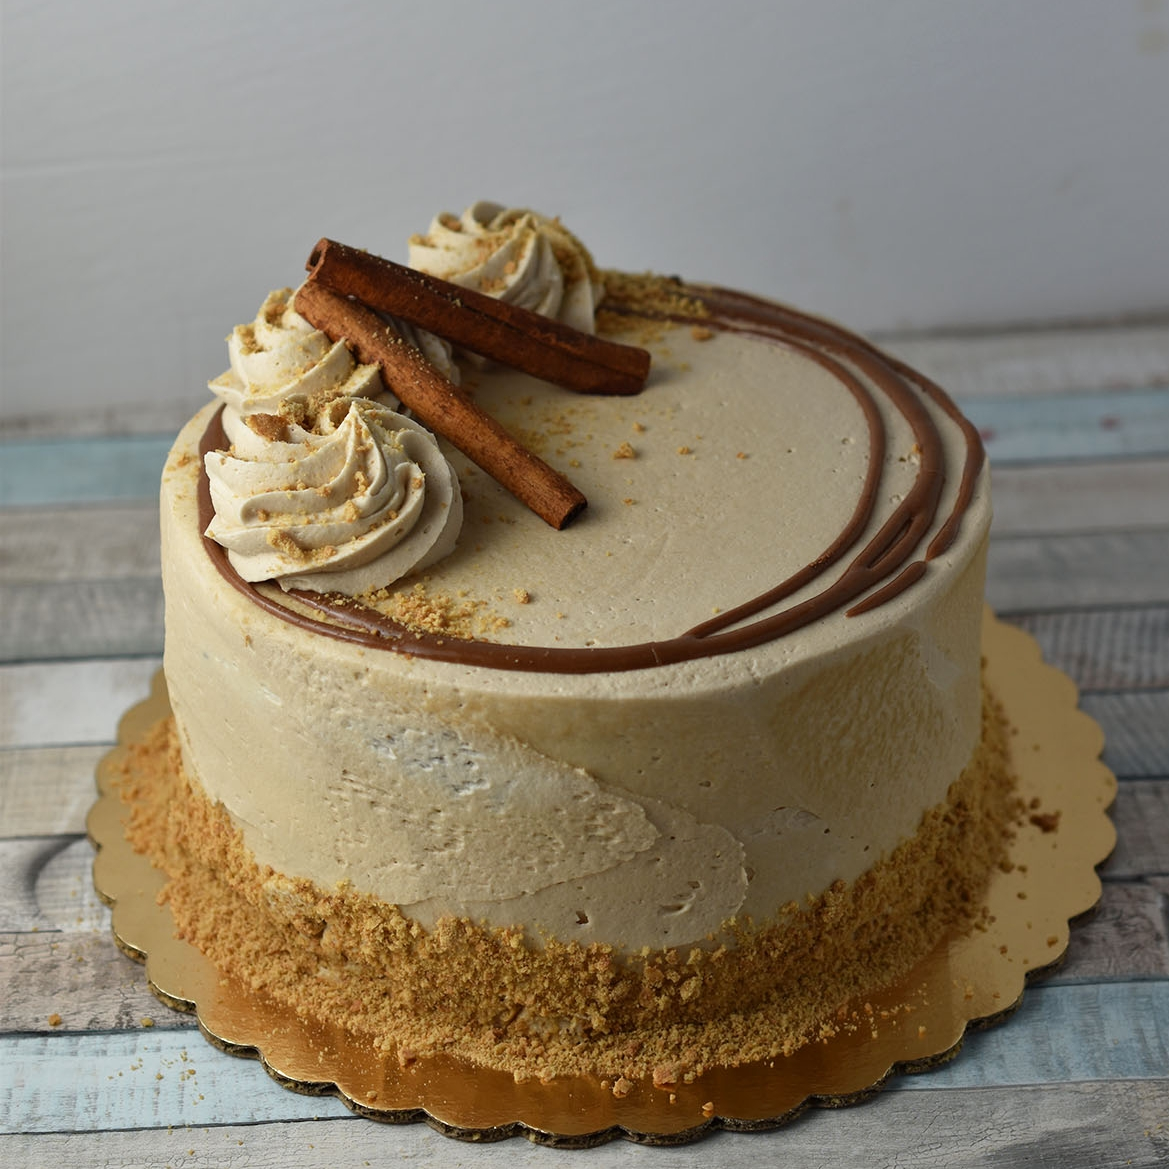 Pumpkin Maple - To all the pumpkin lovers out there, this cake is for you! Super moist pumpkin cake covered in a perfectly sweet maple frosting. Bring on the fall flavors!